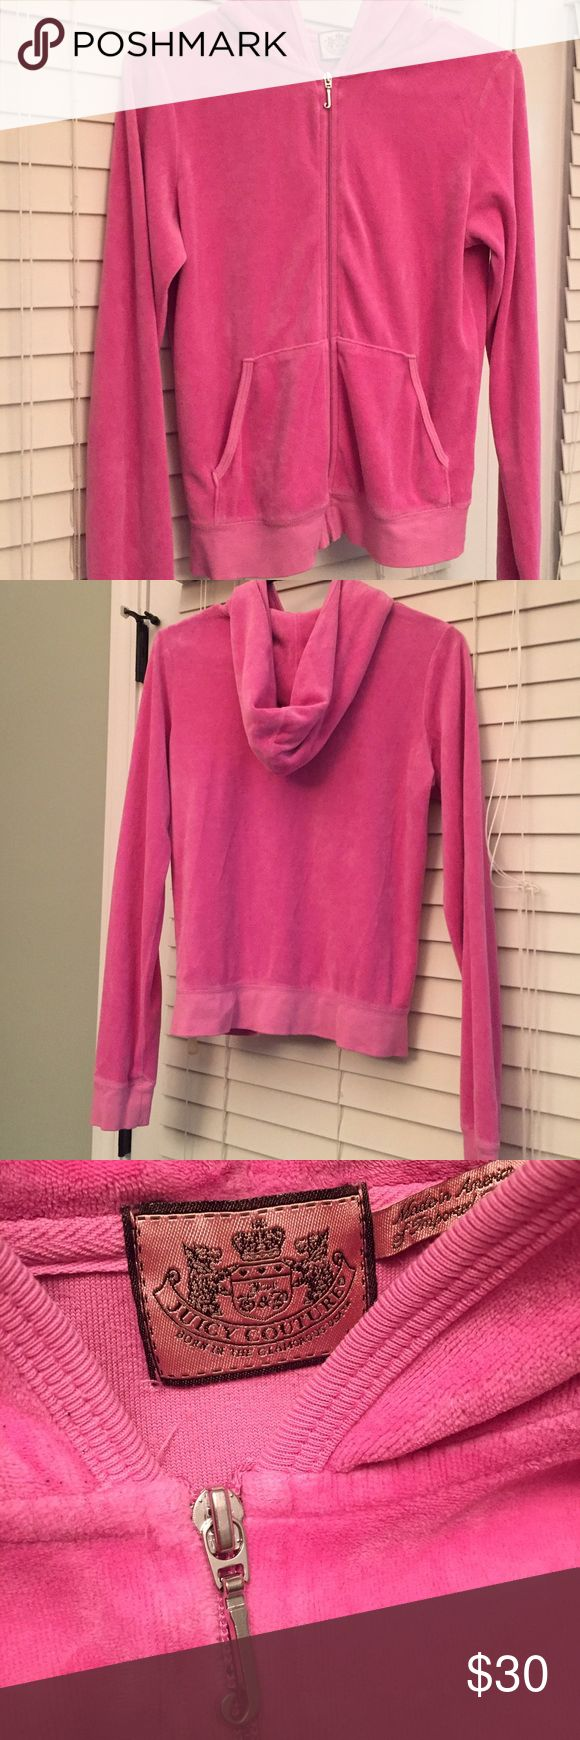 """Juicy Couture Original Velour Jacket Pink Juicy Couture Original Velour Jacket. Size Large. Features a hood, the signature """"j"""" zipper pull, and two front pockets. Only worn once! Juicy Couture Tops Sweatshirts & Hoodies"""